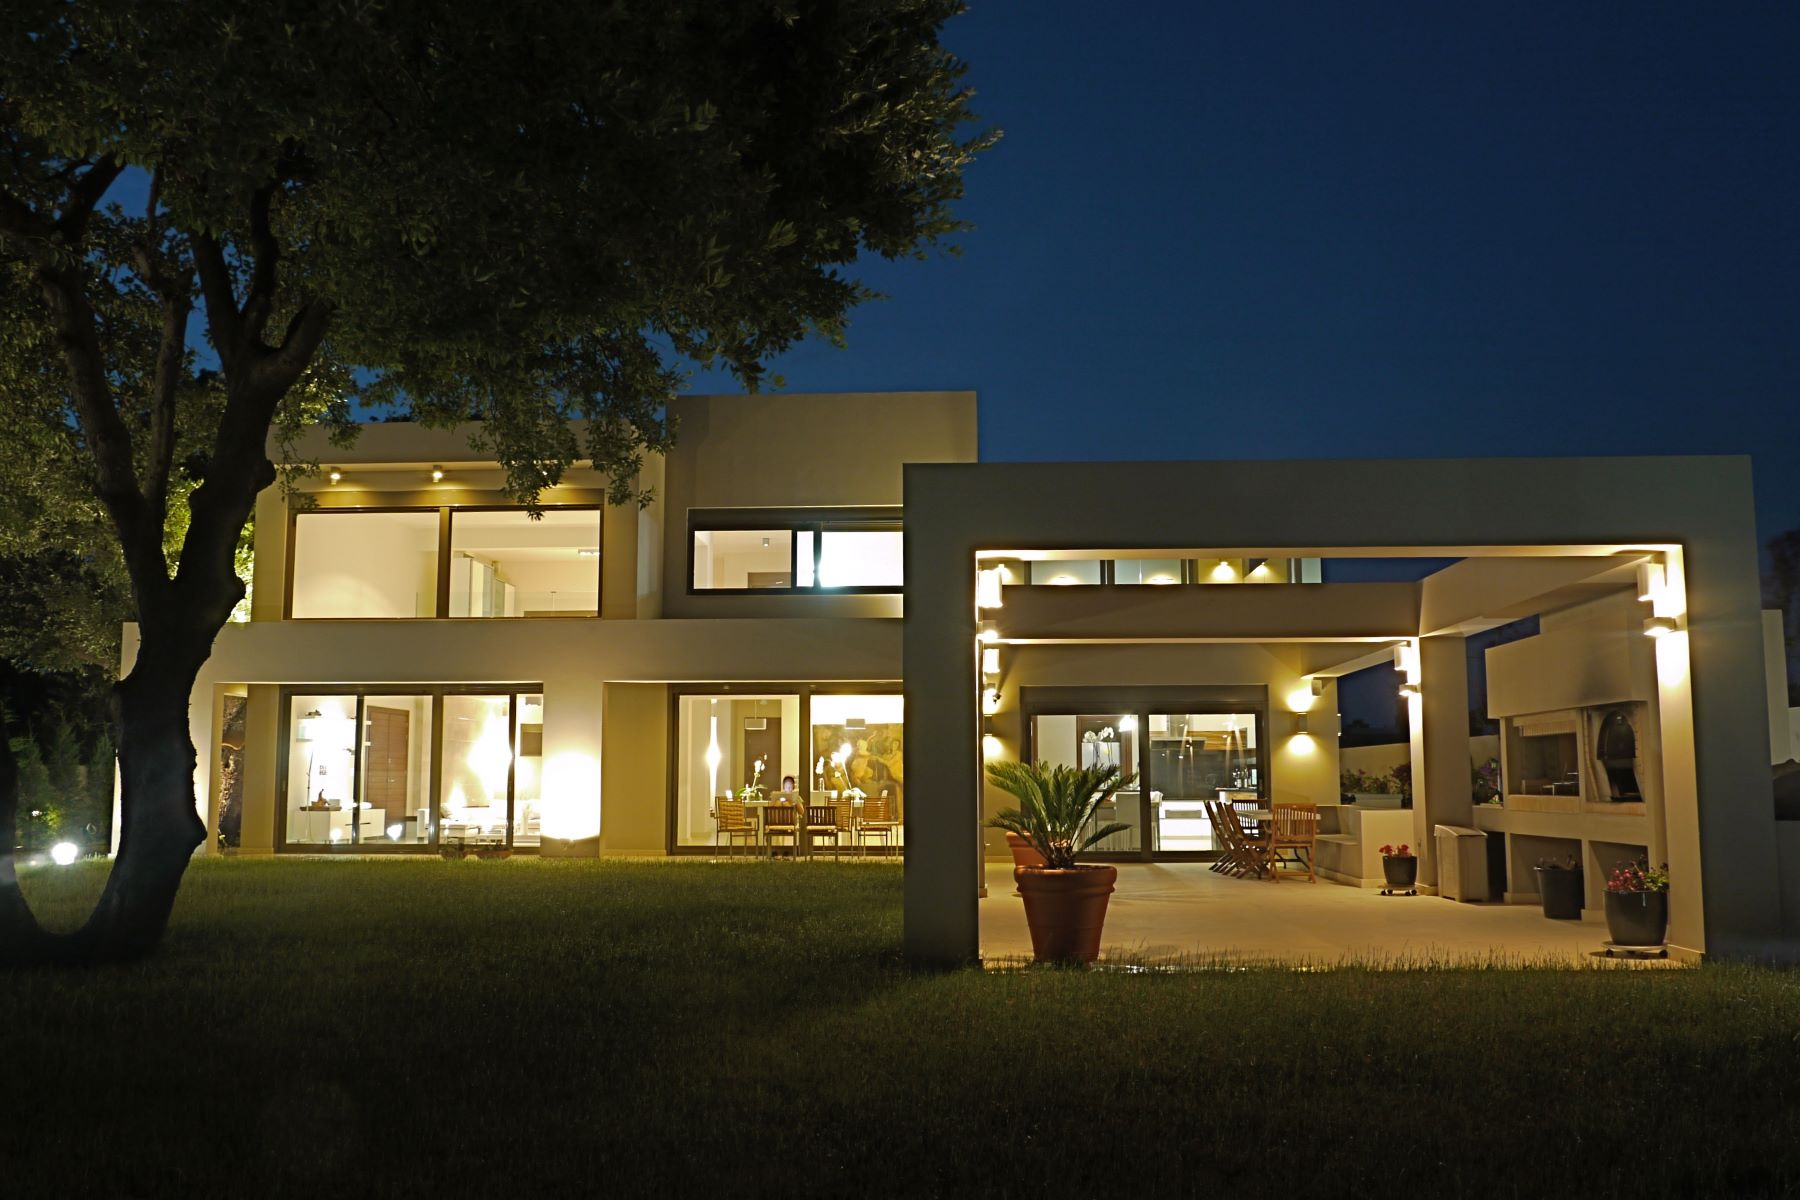 Single Family Home for Sale at Green Hills Filerimos Green Hills Rhodes, Southern Aegean, 85100 Greece